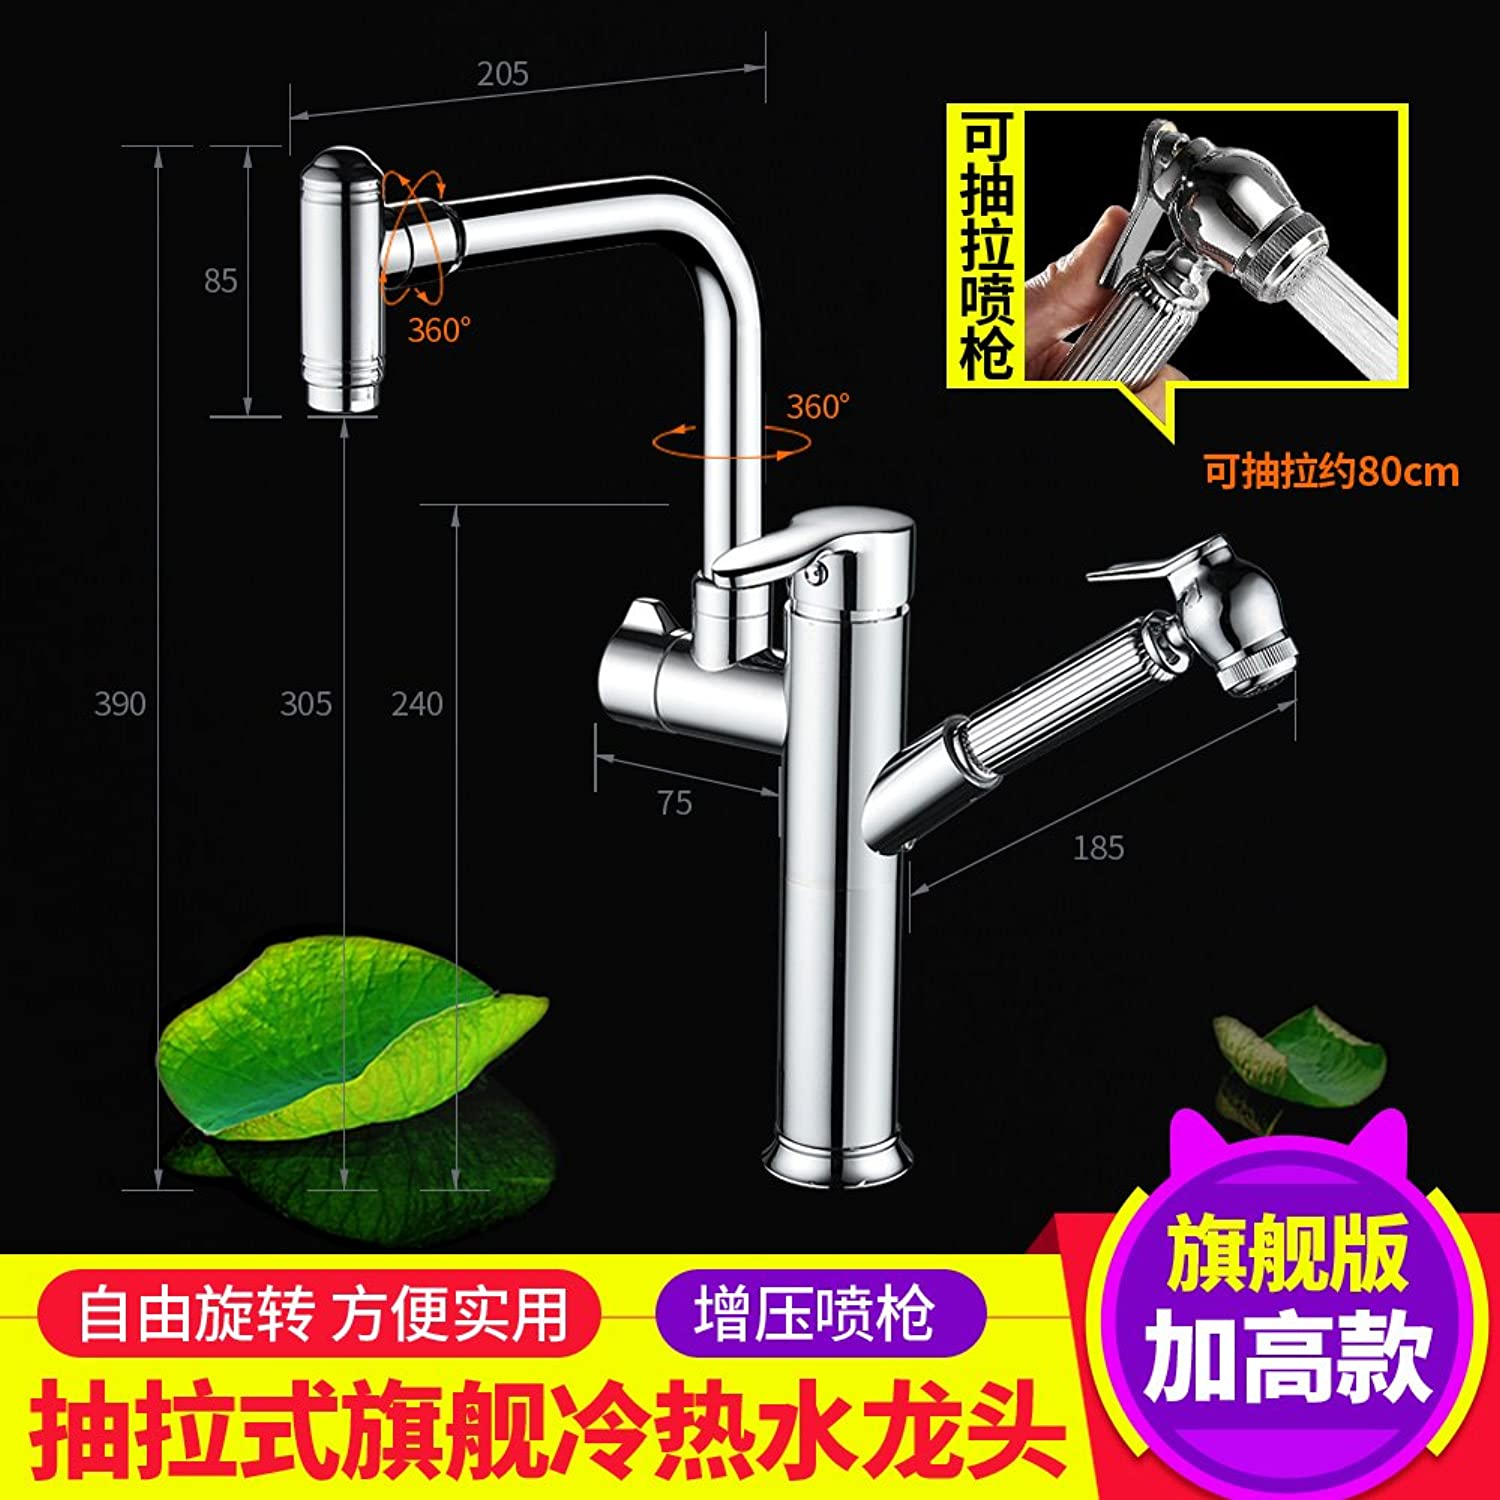 LHbox Basin Mixer Tap Bathroom Sink Faucet All copper pull basin surface basin of cold water faucet wash basin wash basin mixer redates telescopic wash it, the ultimate plus high)